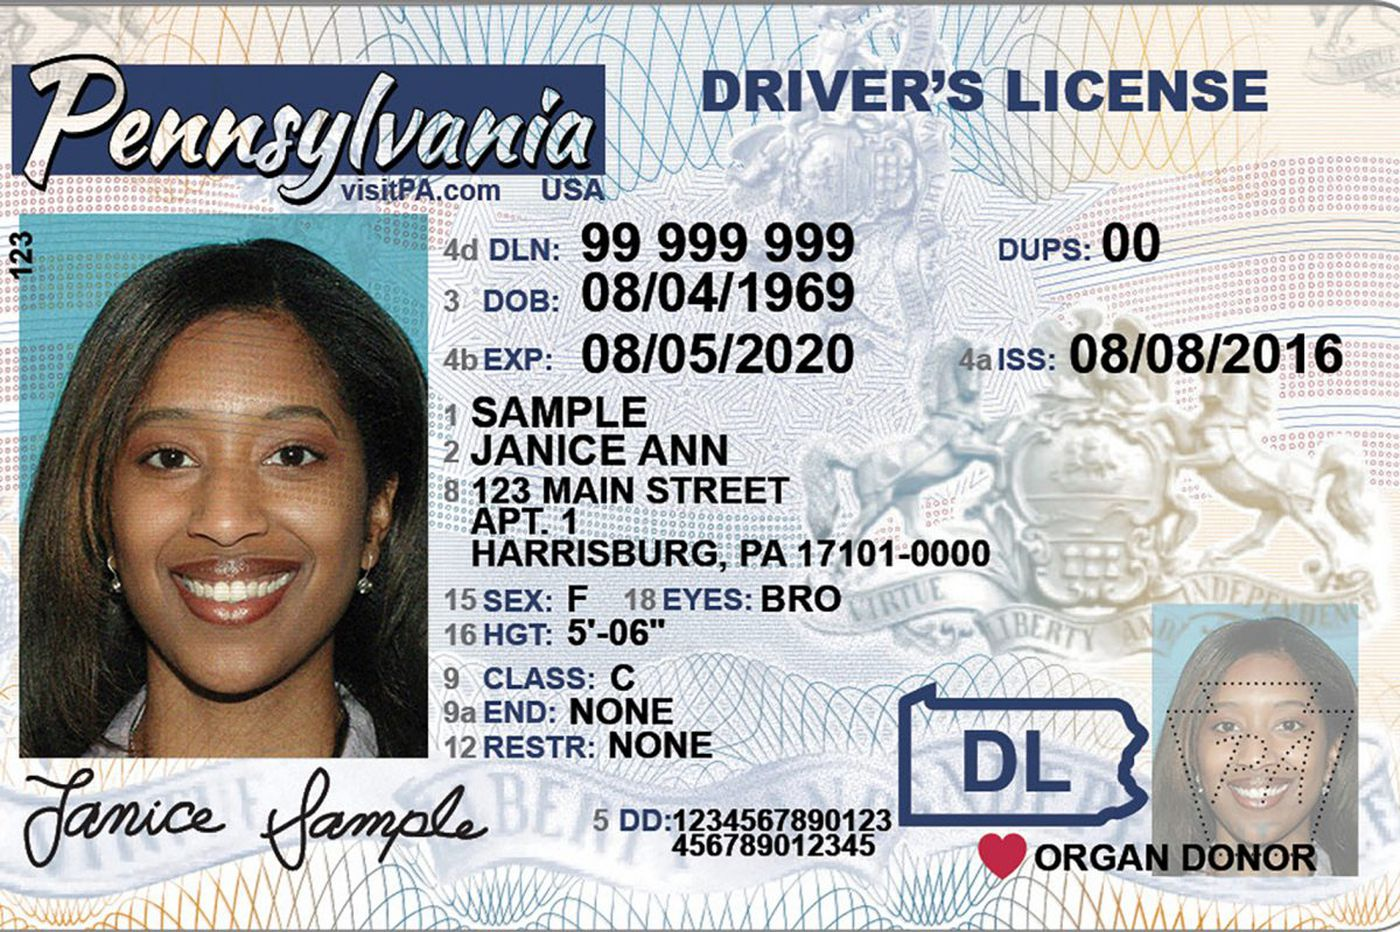 Feds certify Pennsylvania's Real ID system meets standards